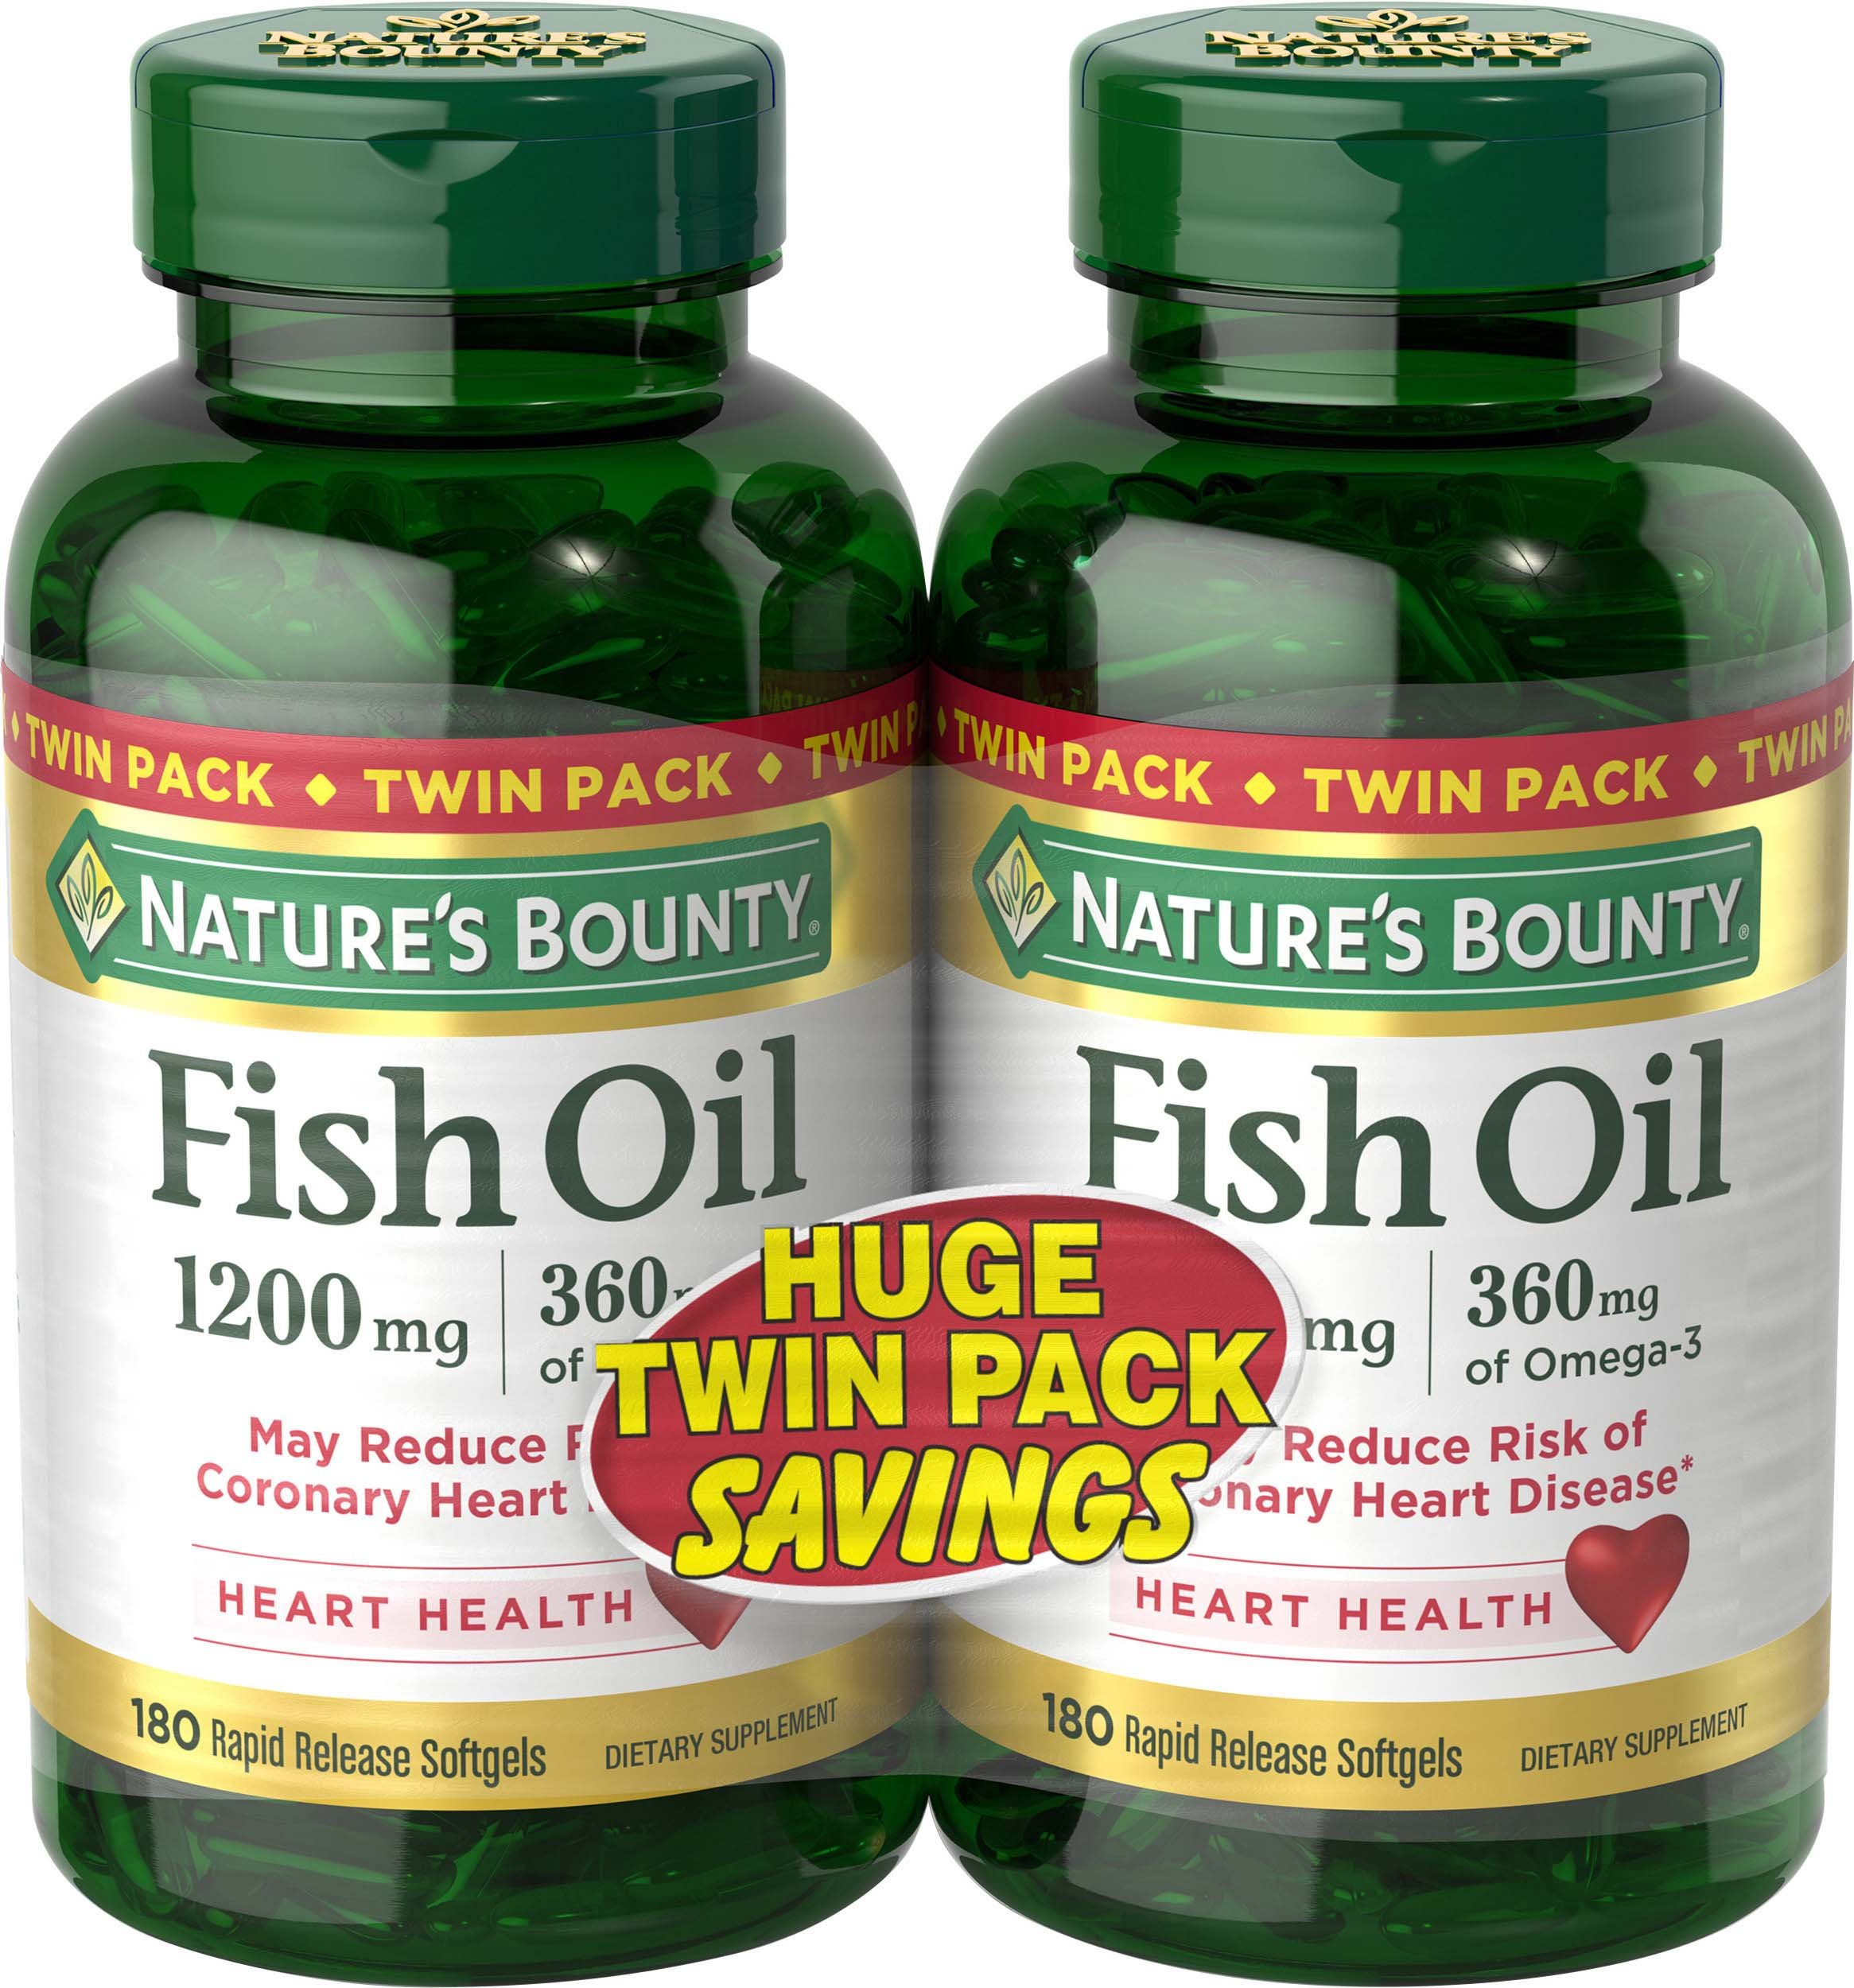 Nature's Bounty Fish Oil 1200 mg Twin Packs, 180-Count per bottle (360 Total Count) Rapid Release Liquid Softgels by Nature's Bounty